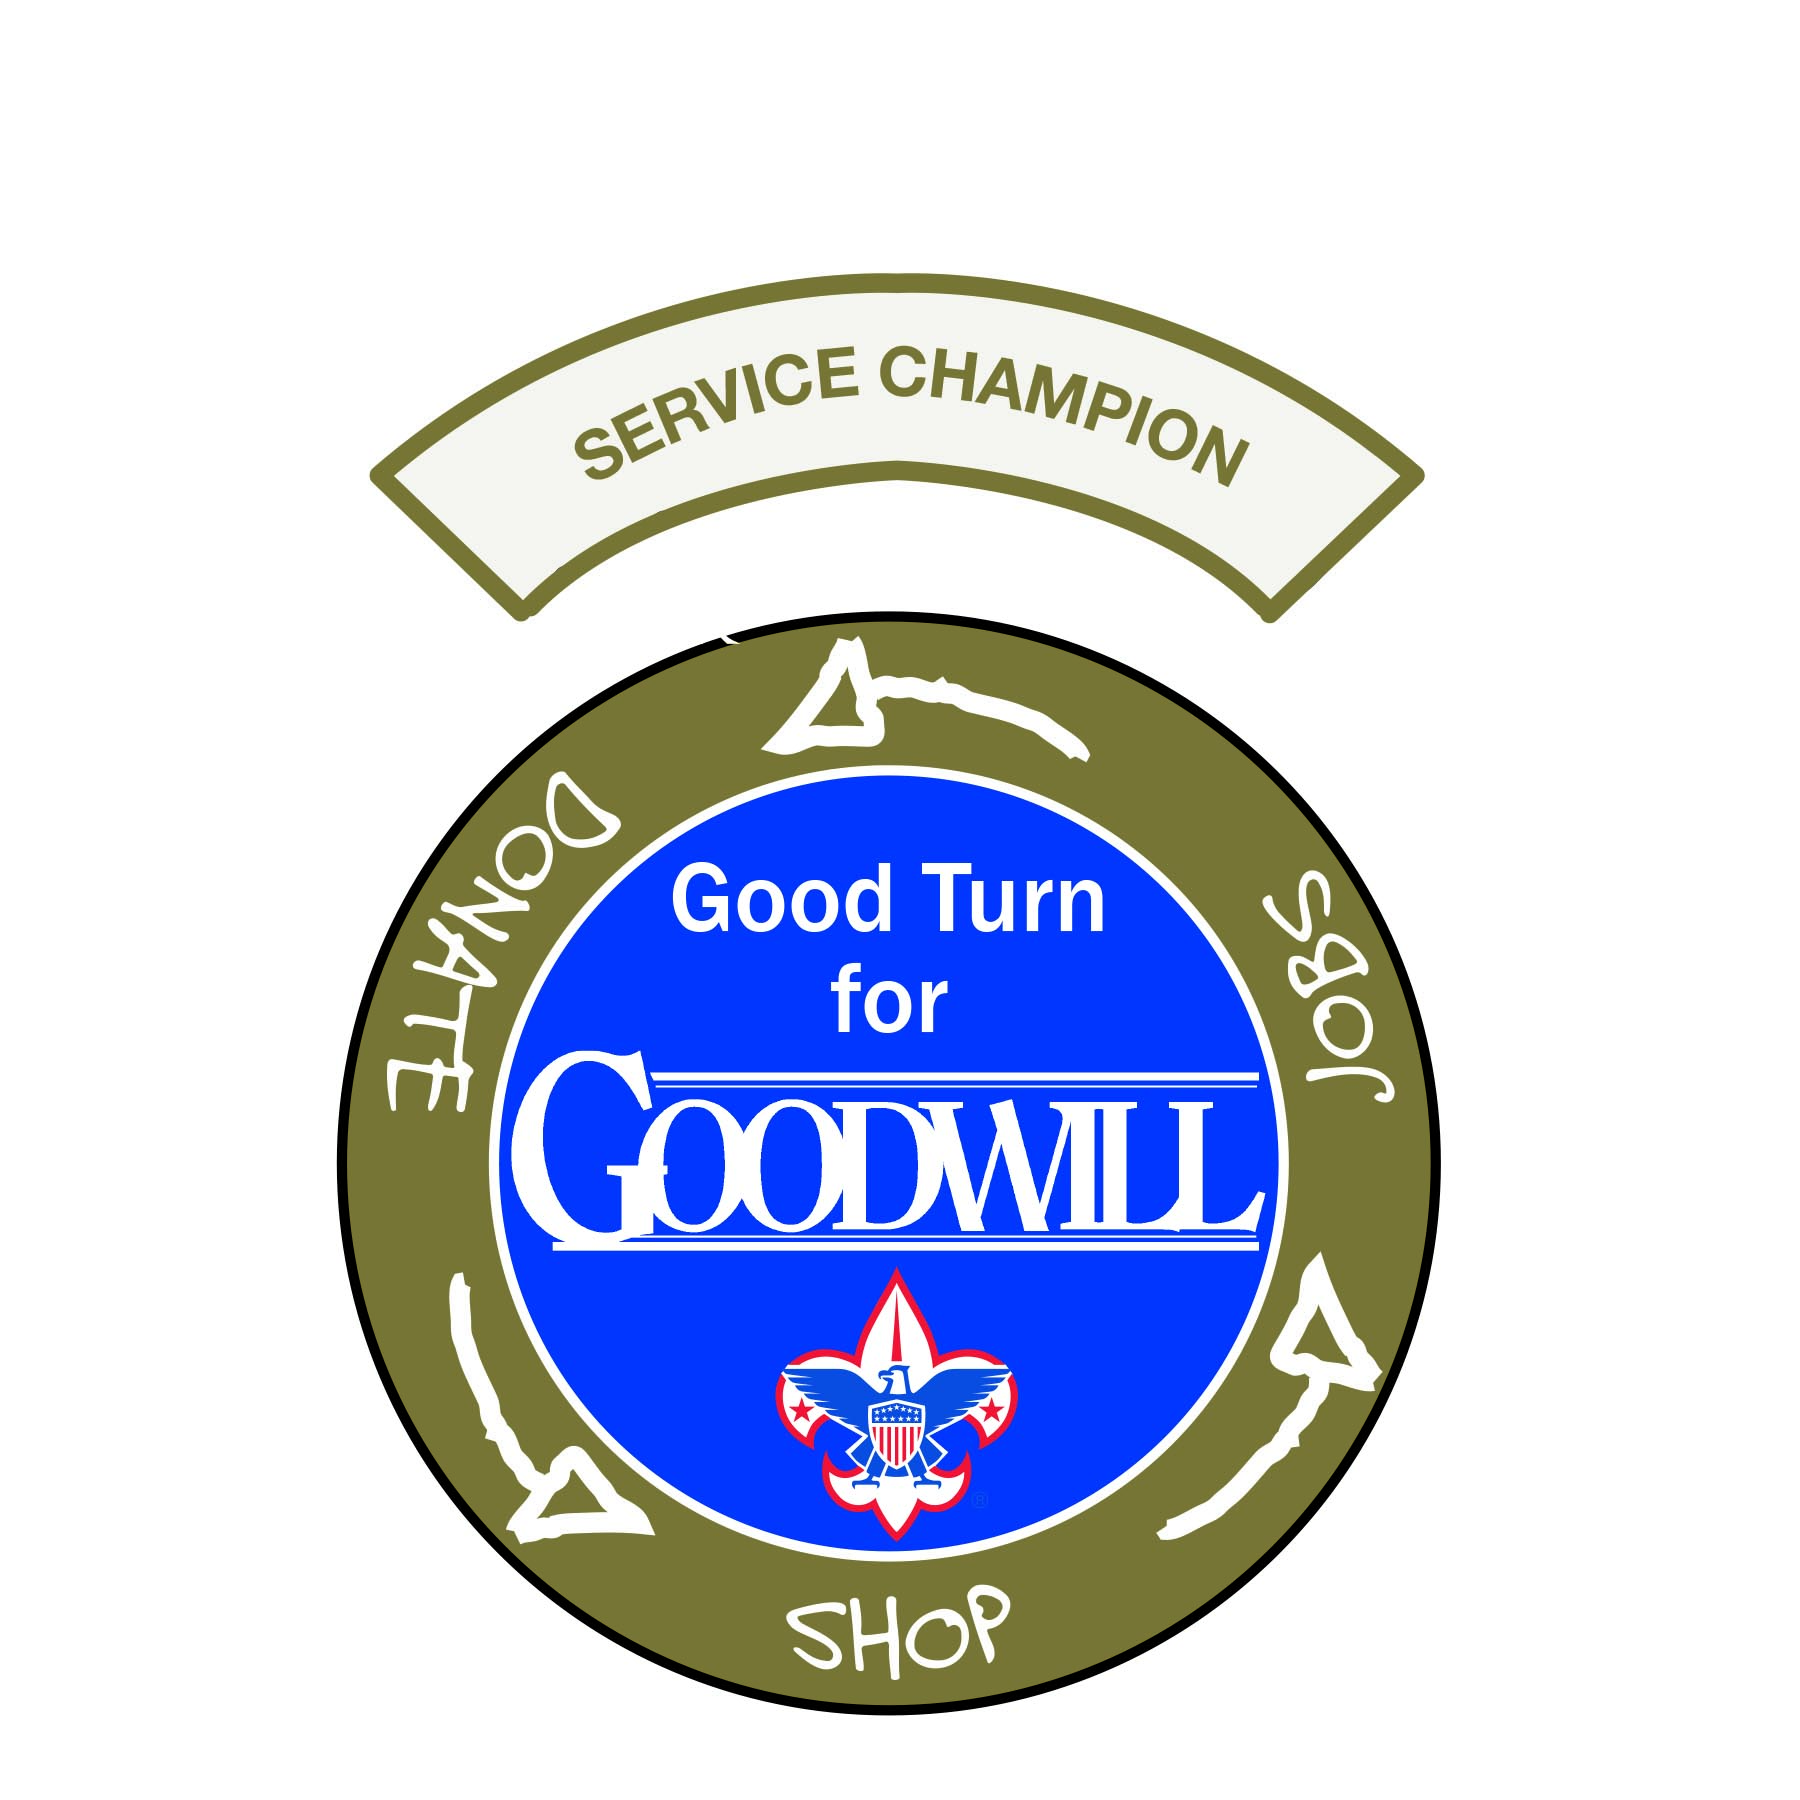 Boy Scouts Good Turn for Goodwill